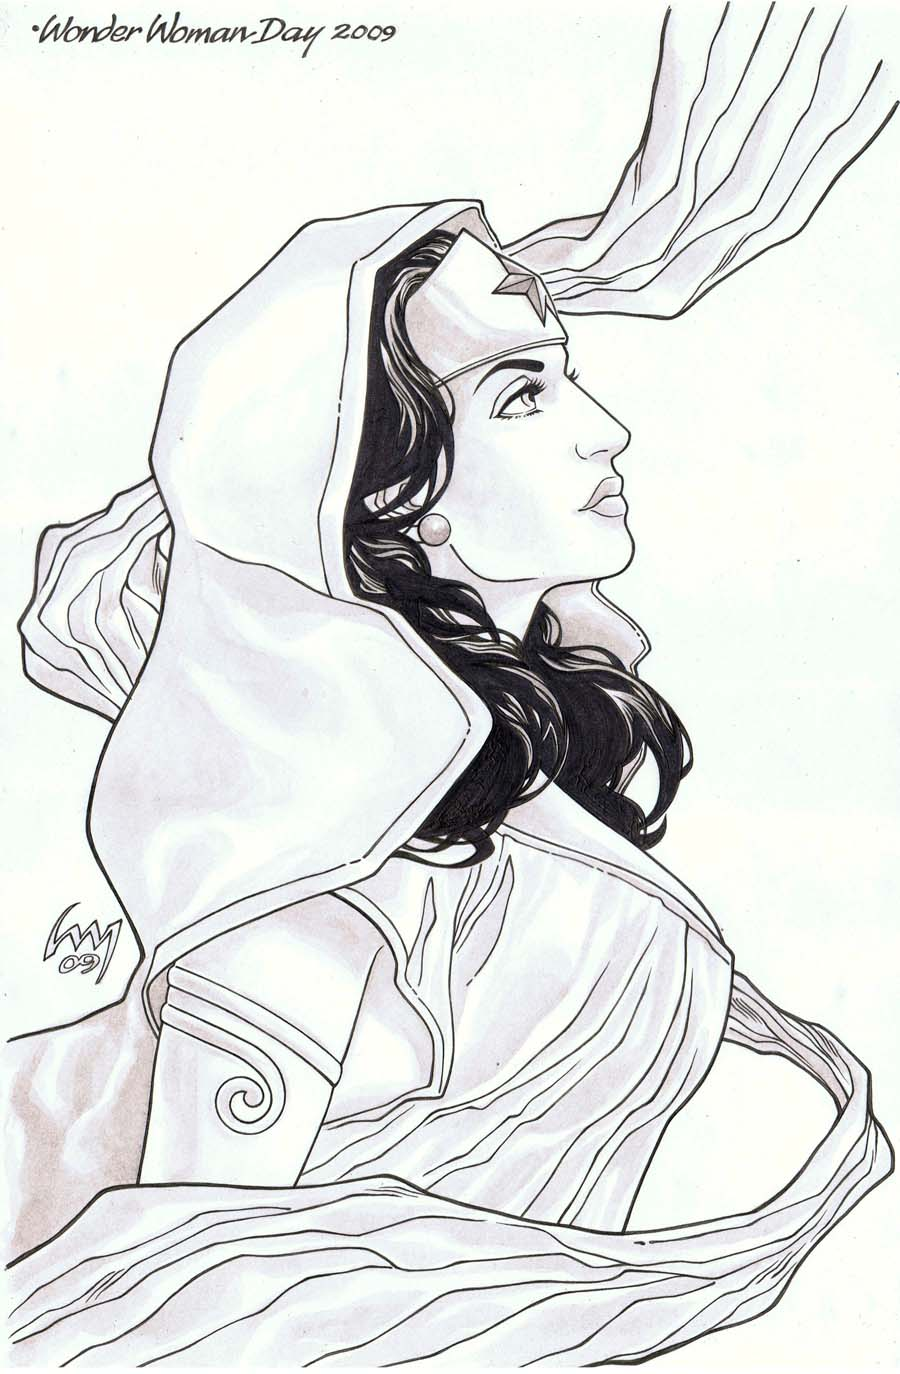 Angel From Themyscira inked by wrathofkhan